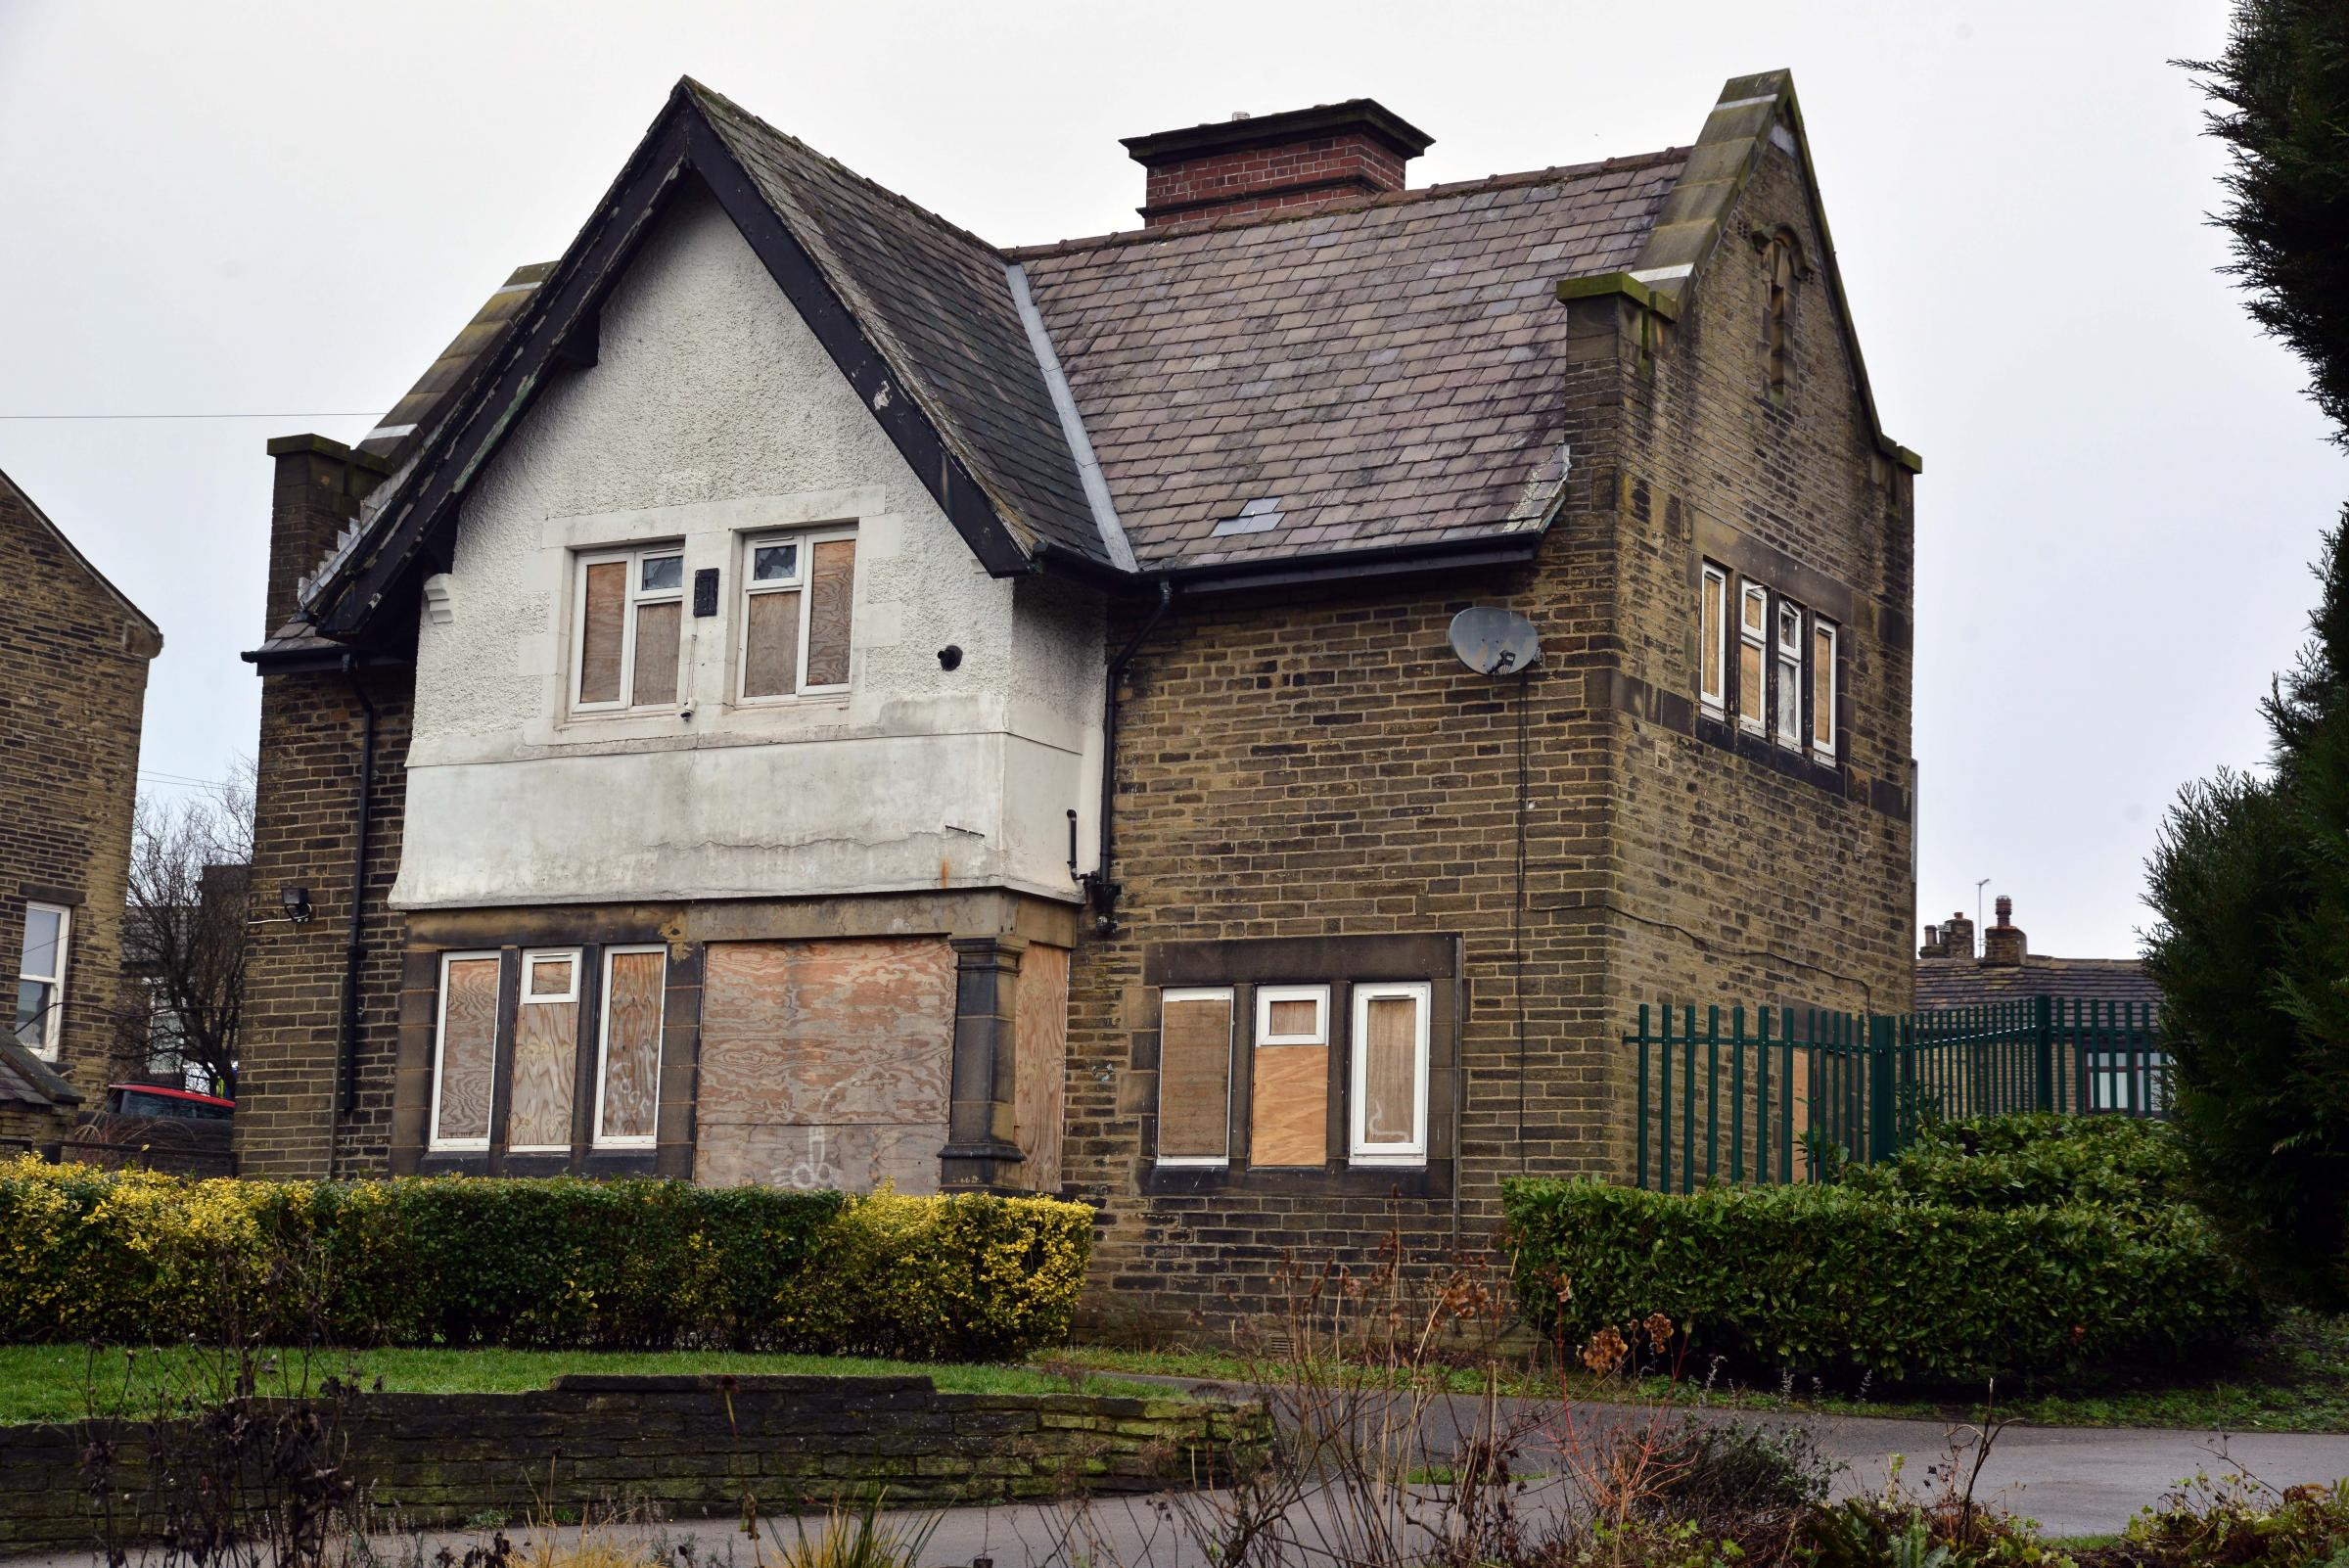 The former Park Keepers cottage in Wibsey Park.